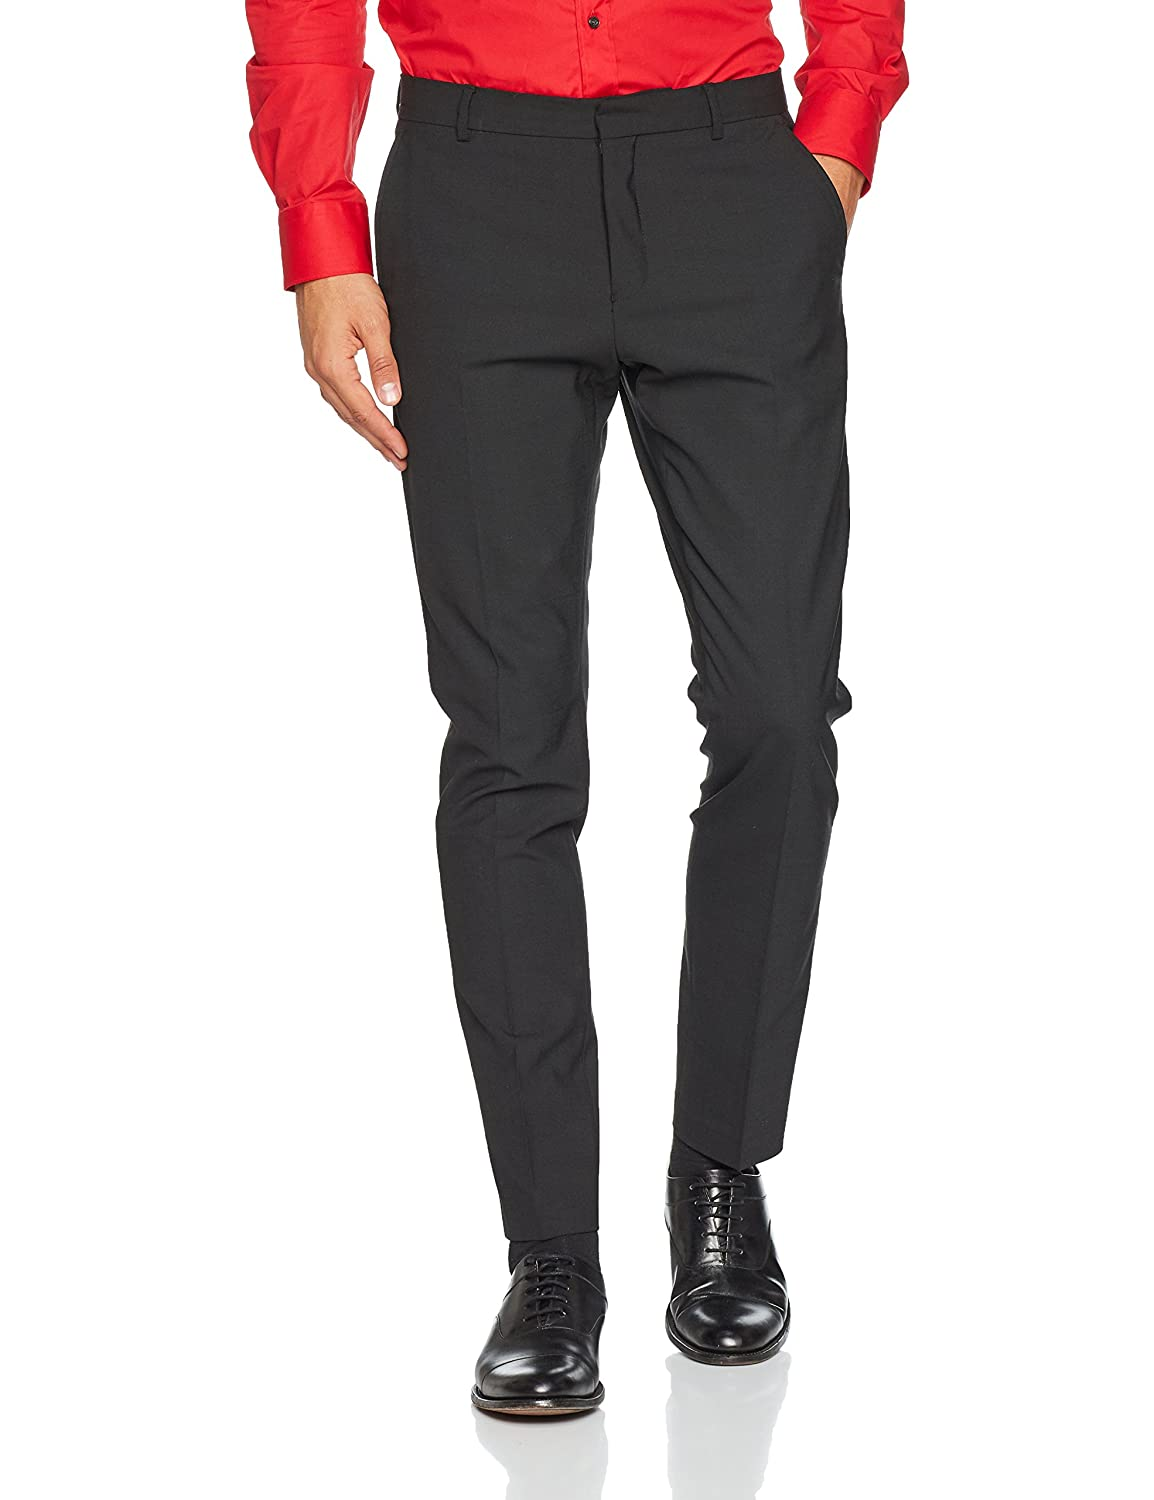 SELECTED HOMME Pantaloni Completo Uomo 16058629